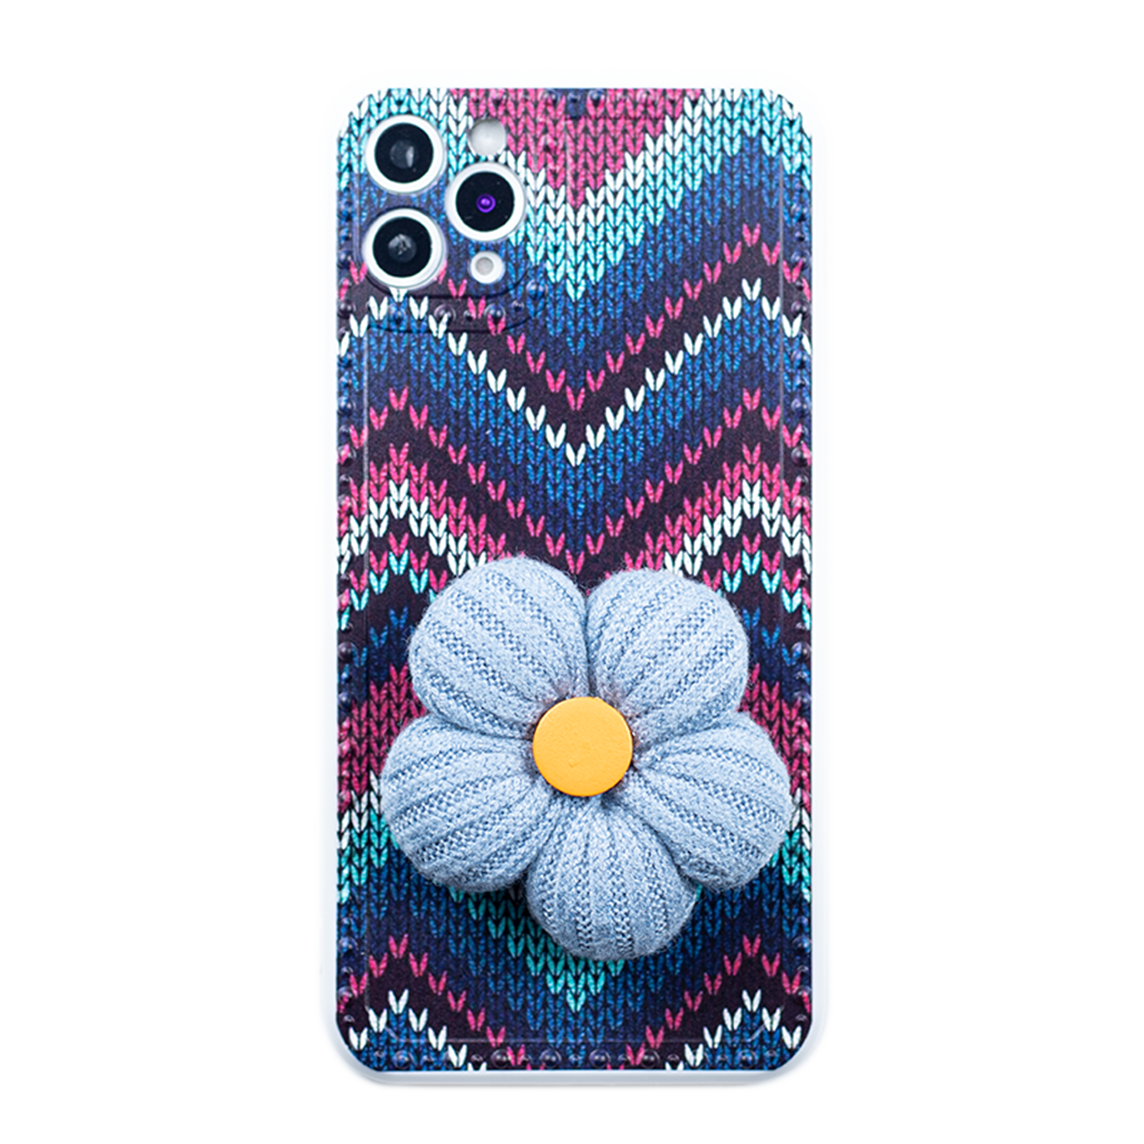 Sewing Knitting Crochet Textile Case With Flower PopSocket